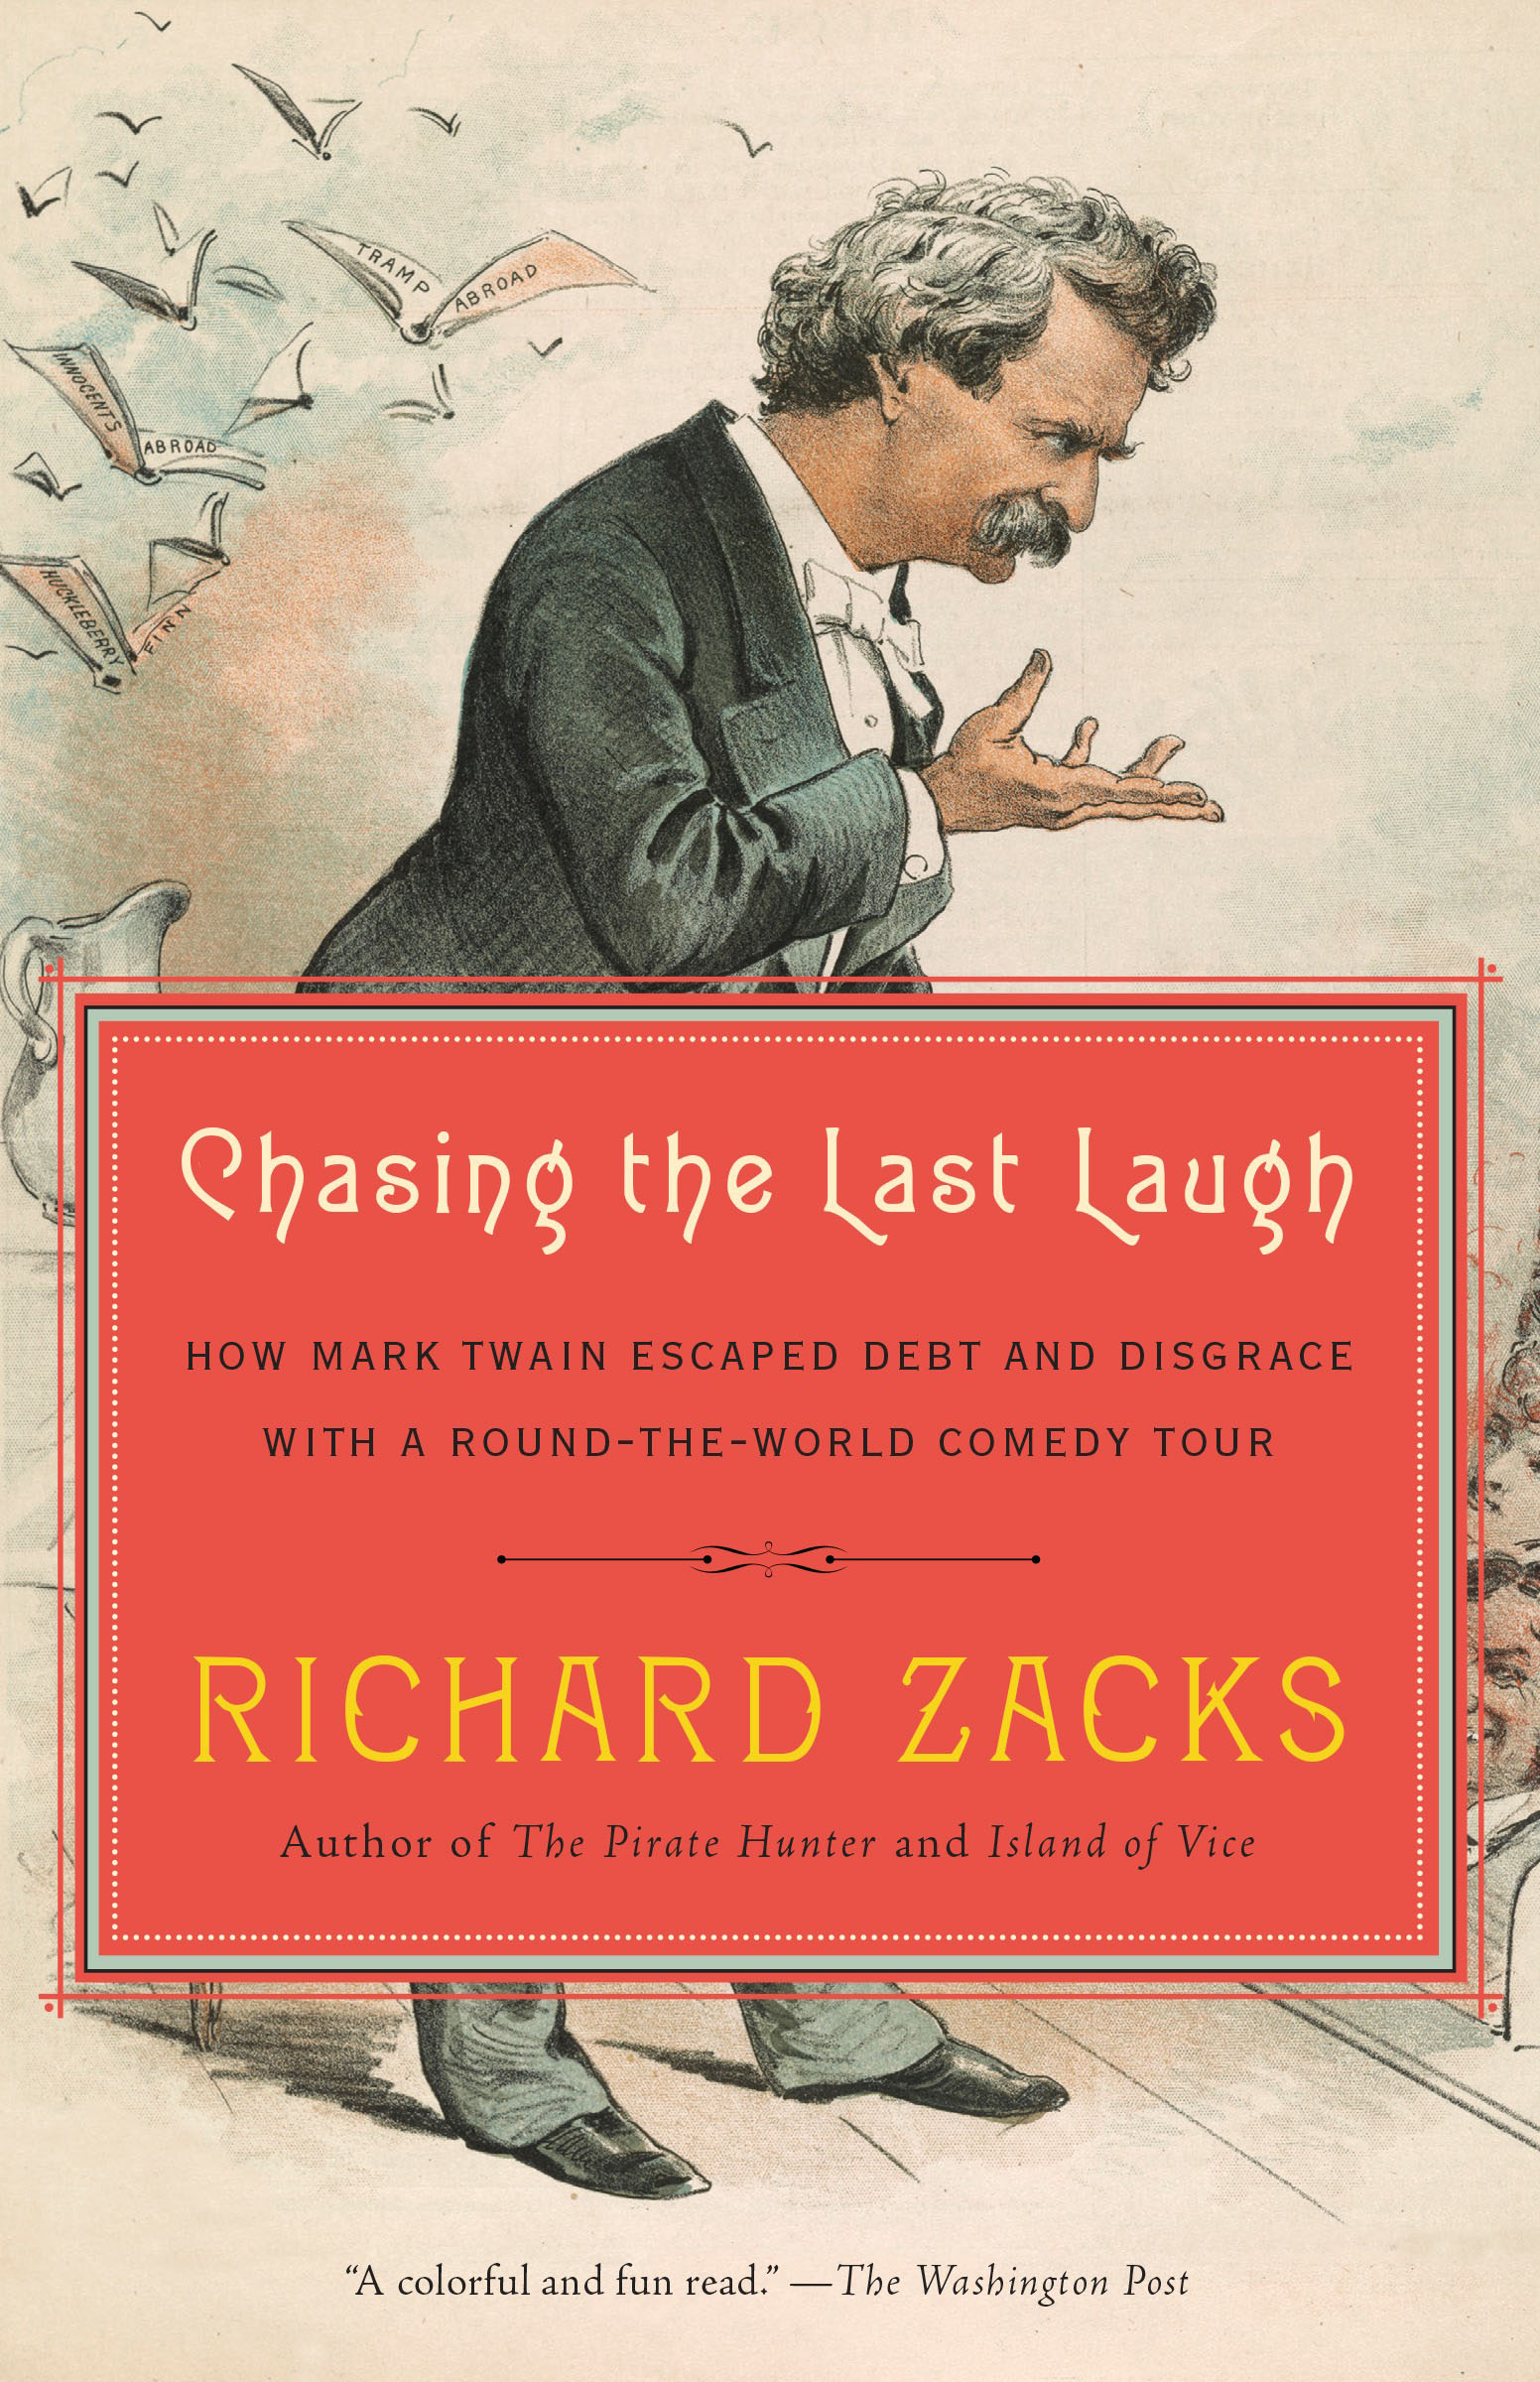 Chasing the Last Laugh twain m letters from the earth a shot story